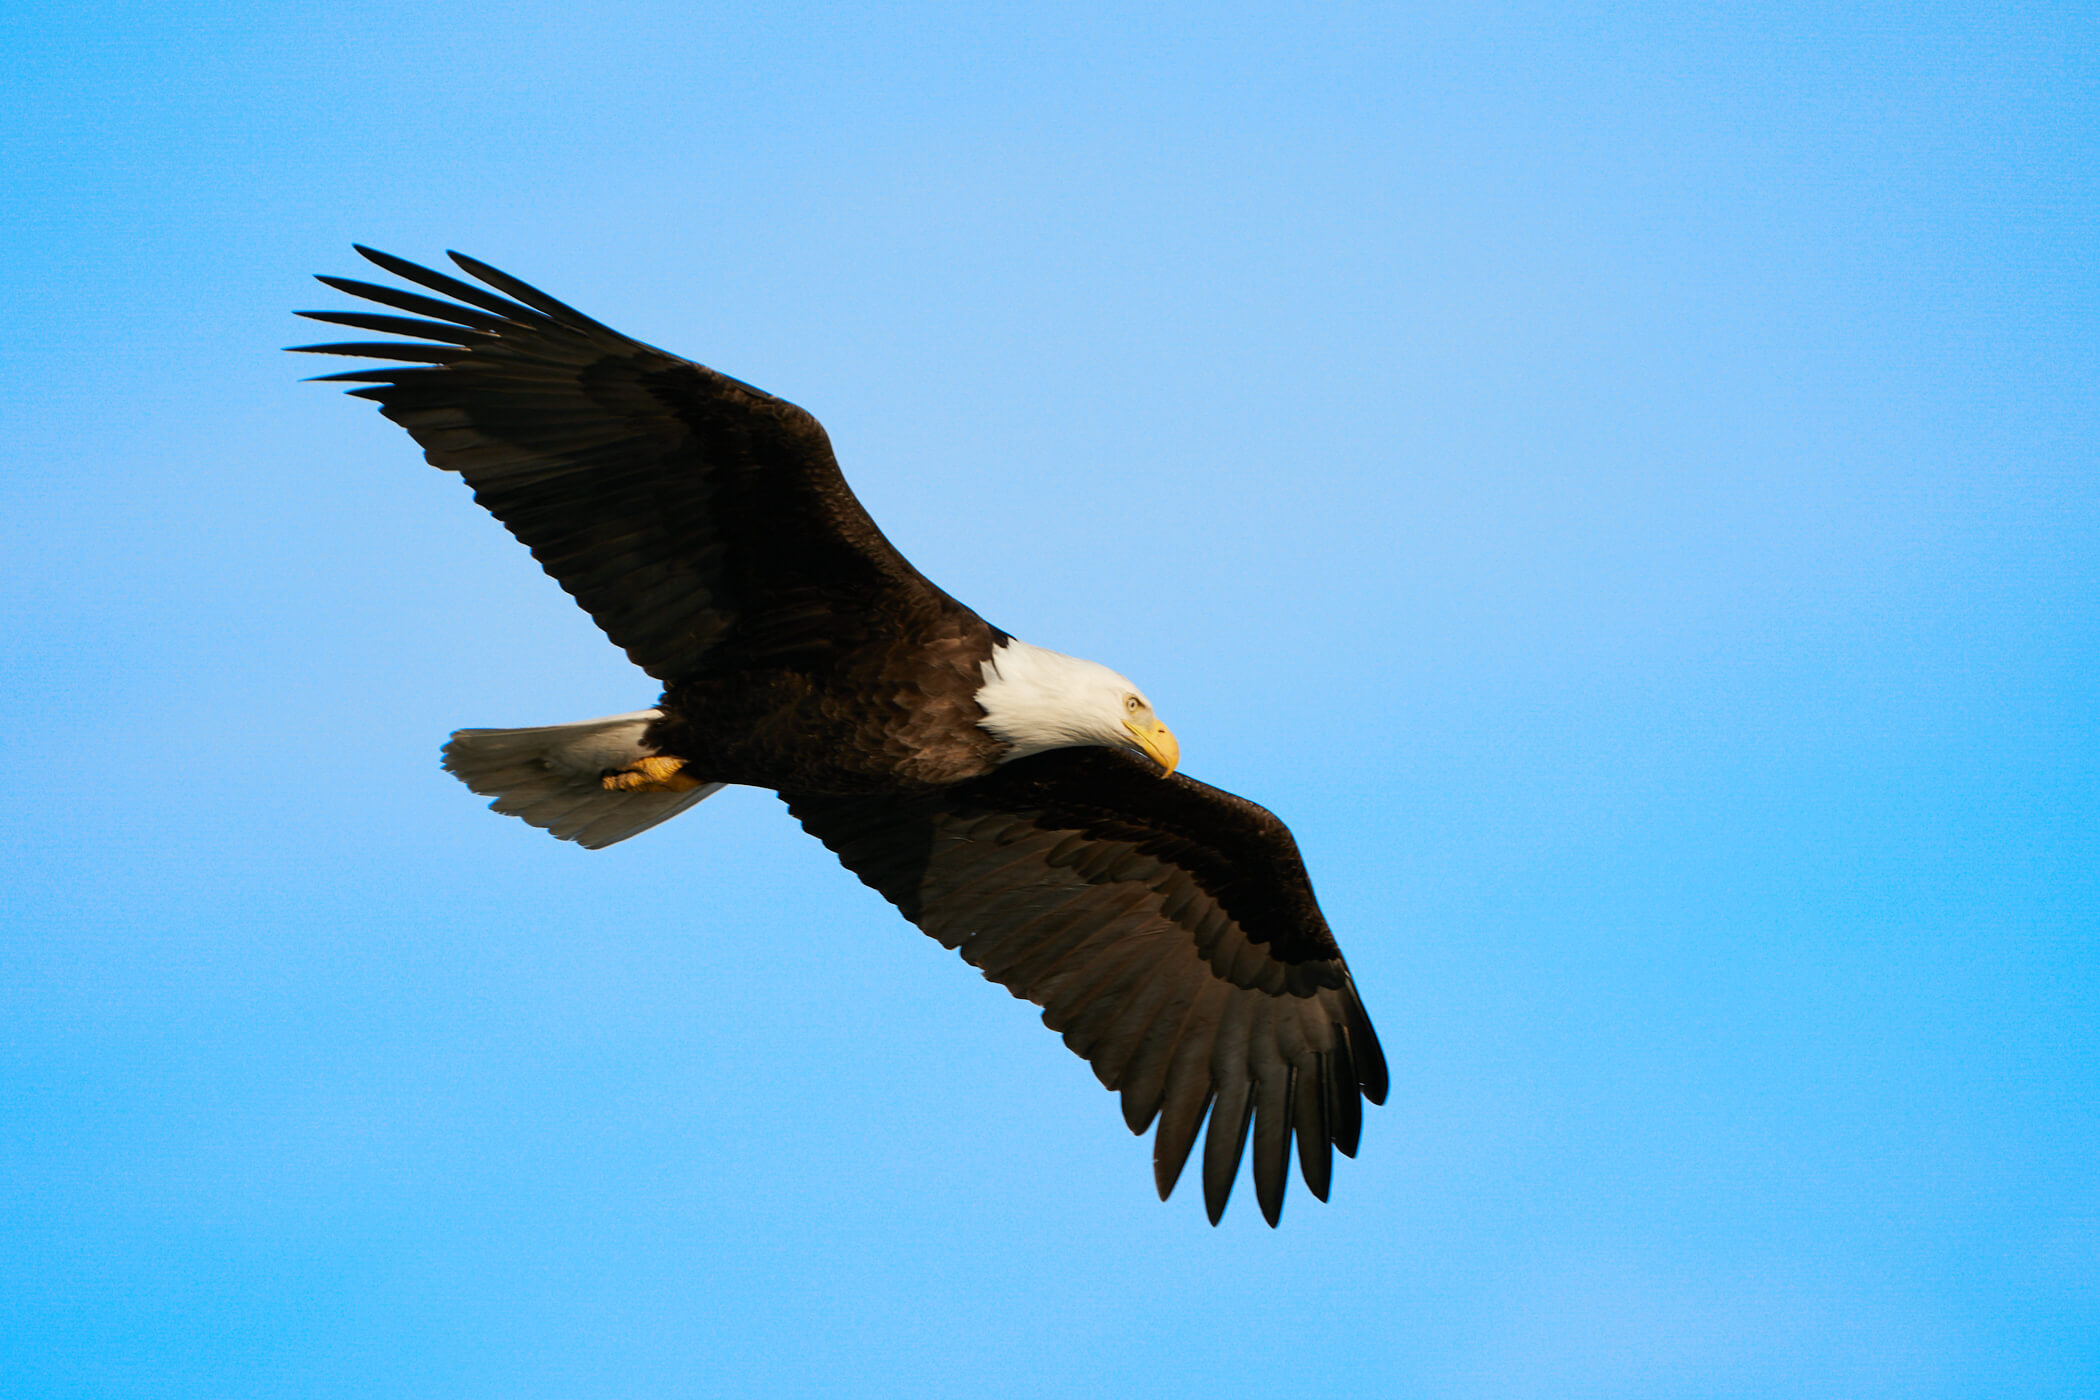 Where to find eagles in alaska